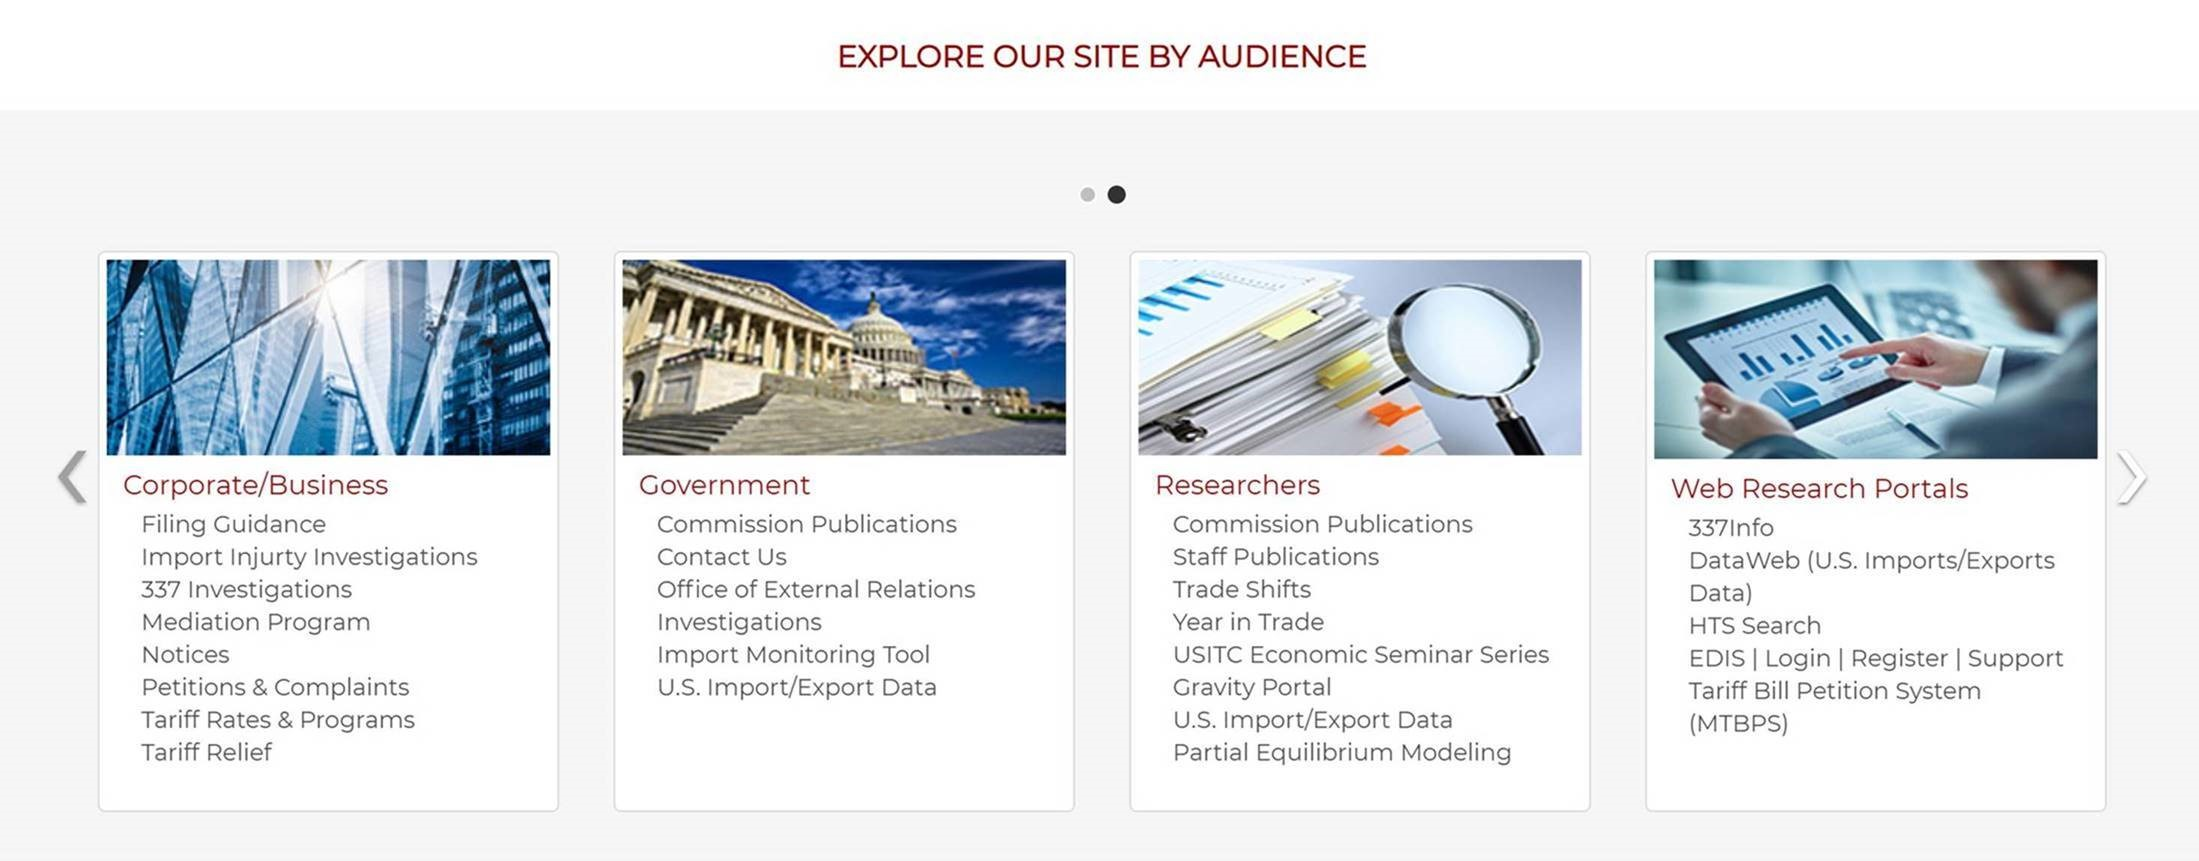 """Web Site Redesign Preview: New """"By Audience"""" Section 